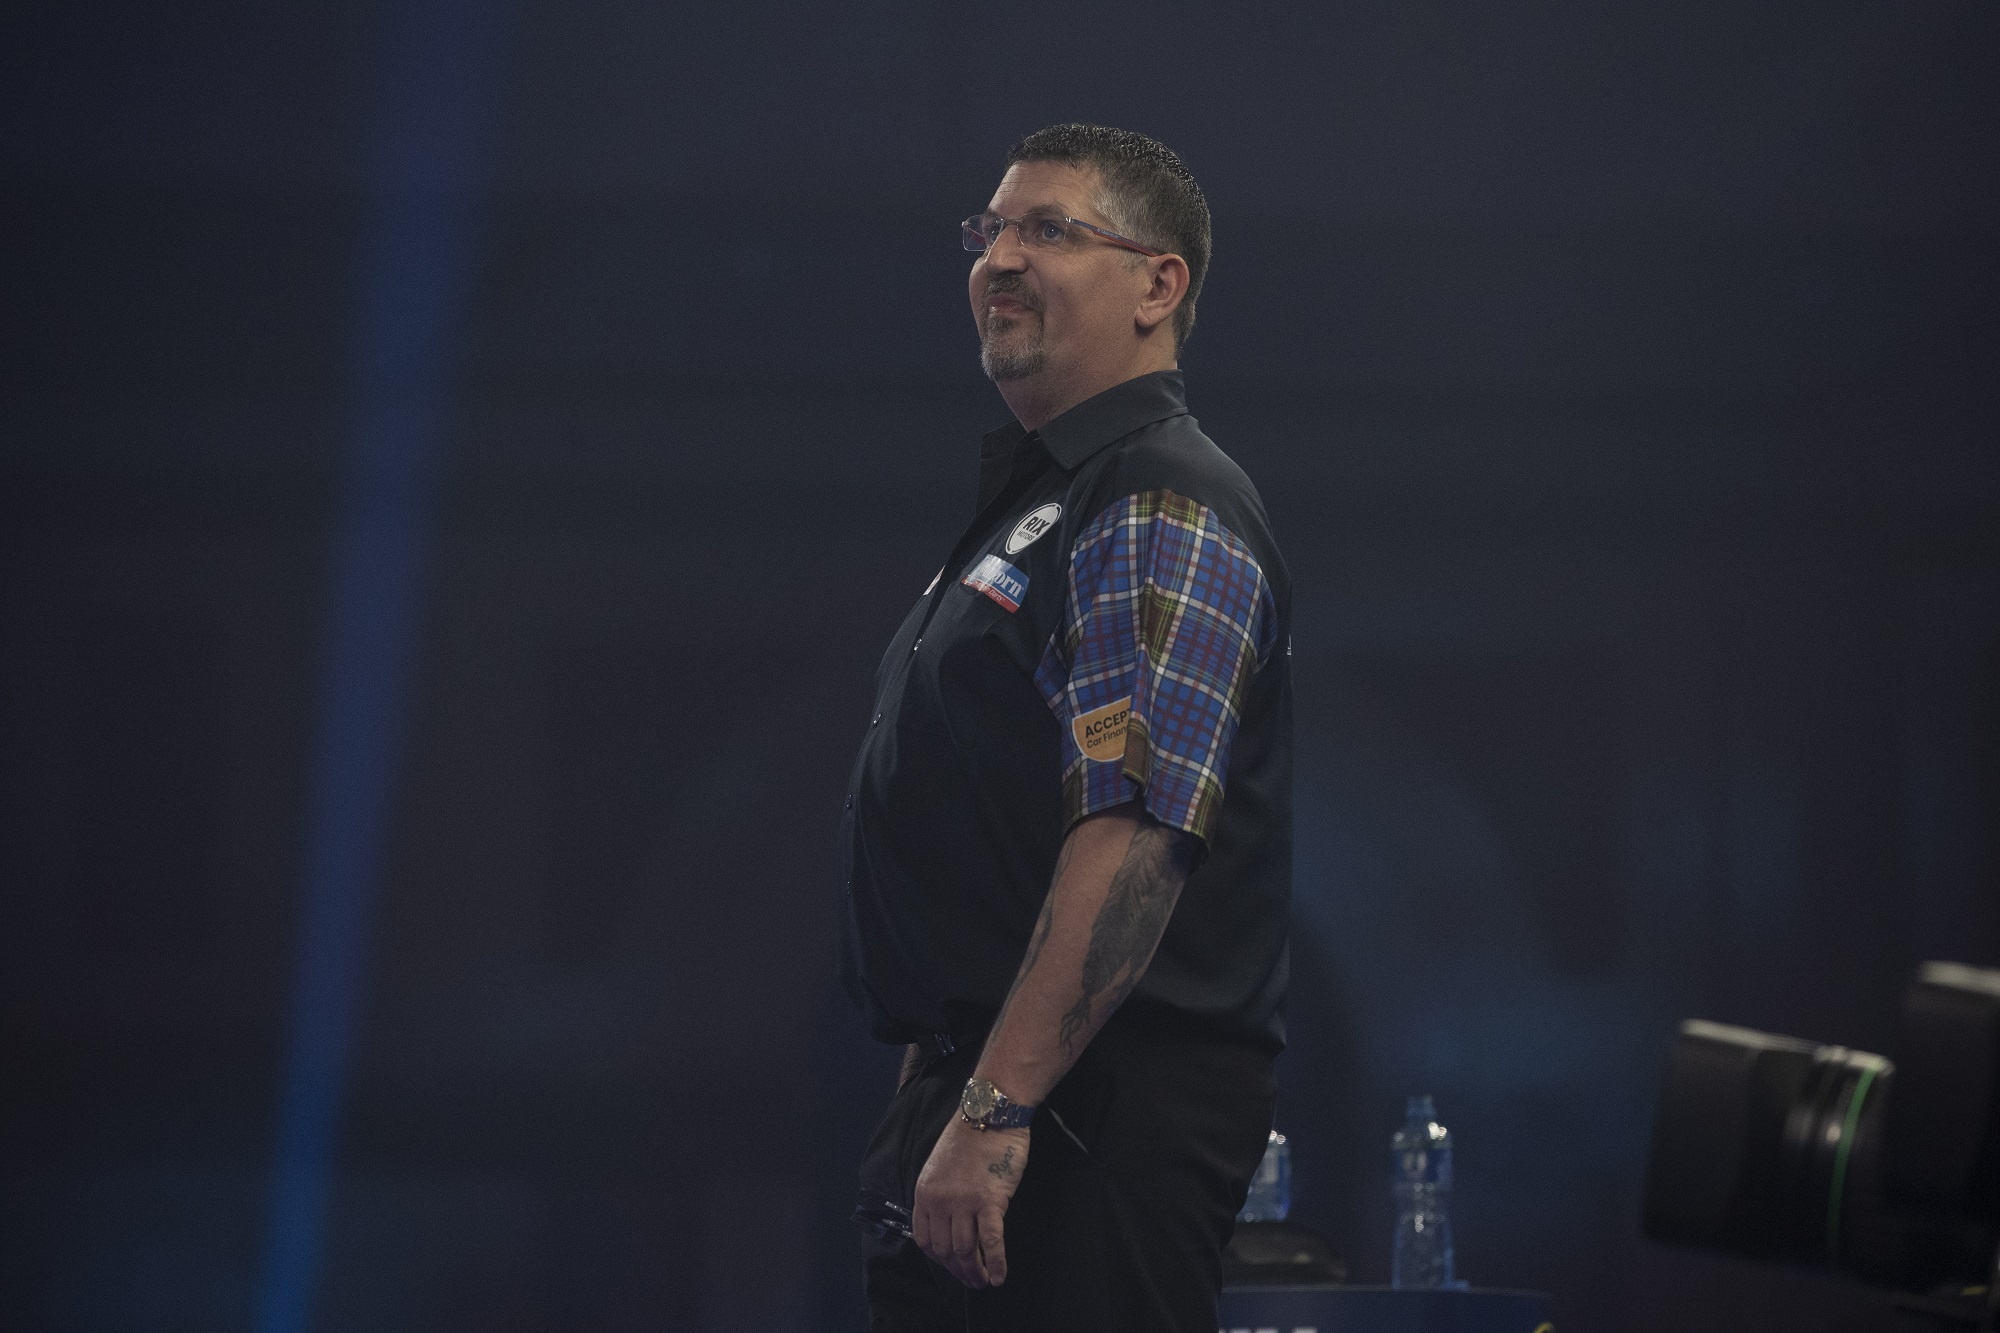 Gary Anderson takes a shot at Sky punditry team